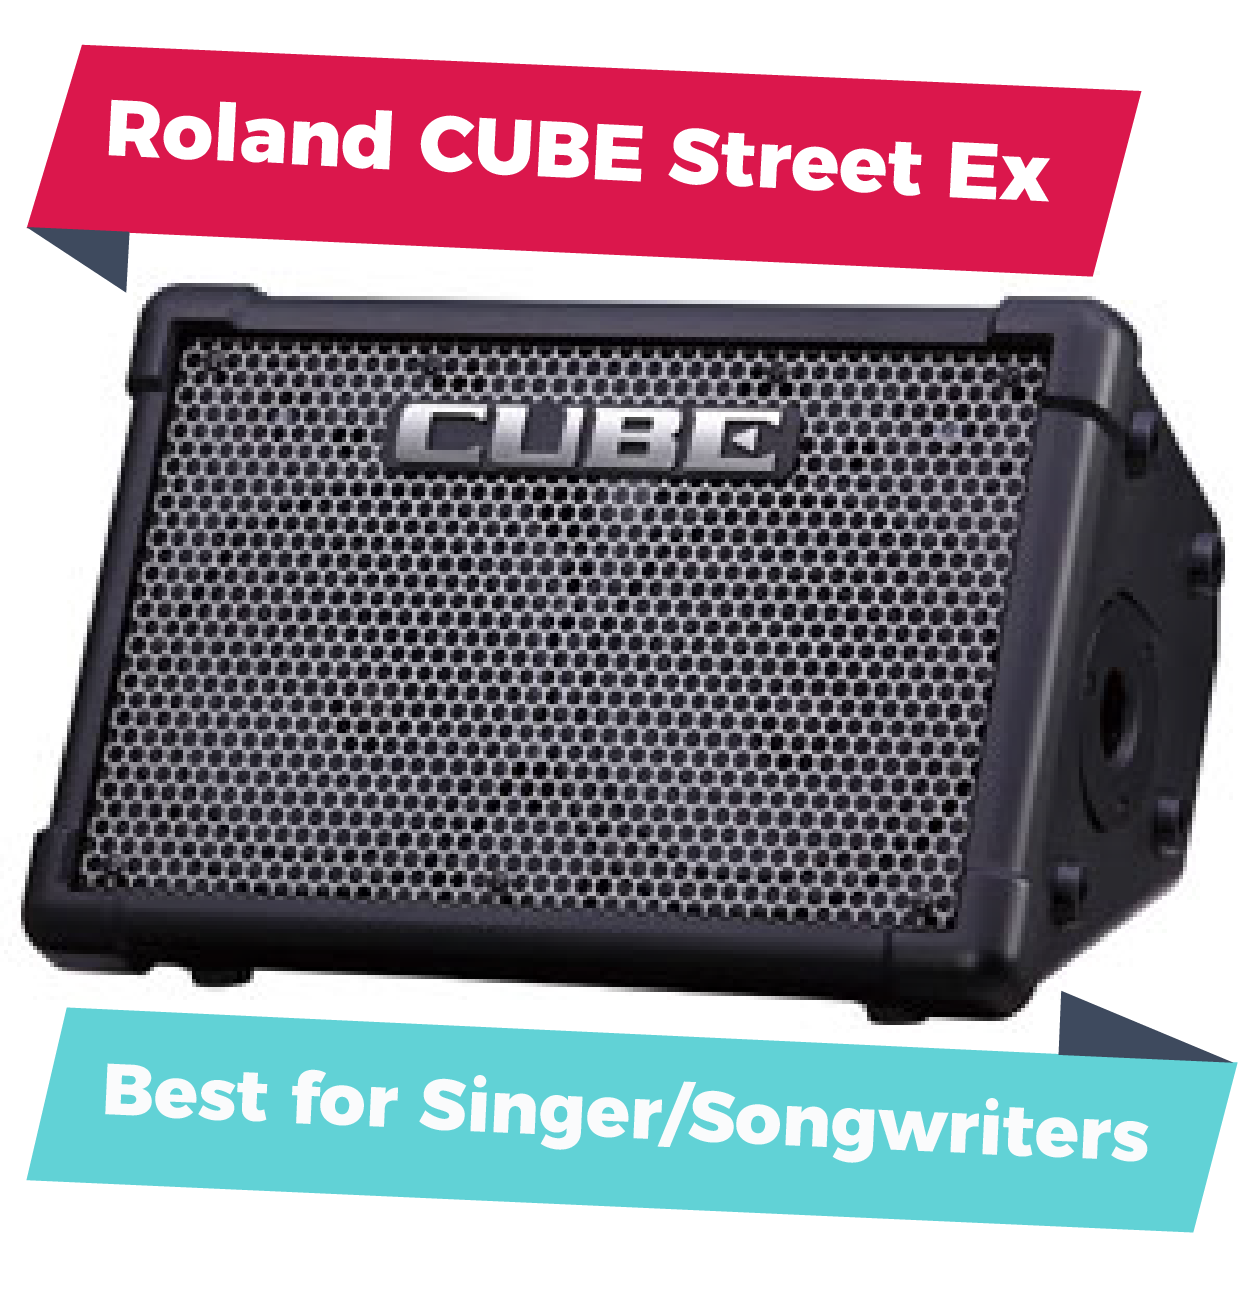 Roland Street CUBE Ex, one of the best amps for busking for singer-songwriters